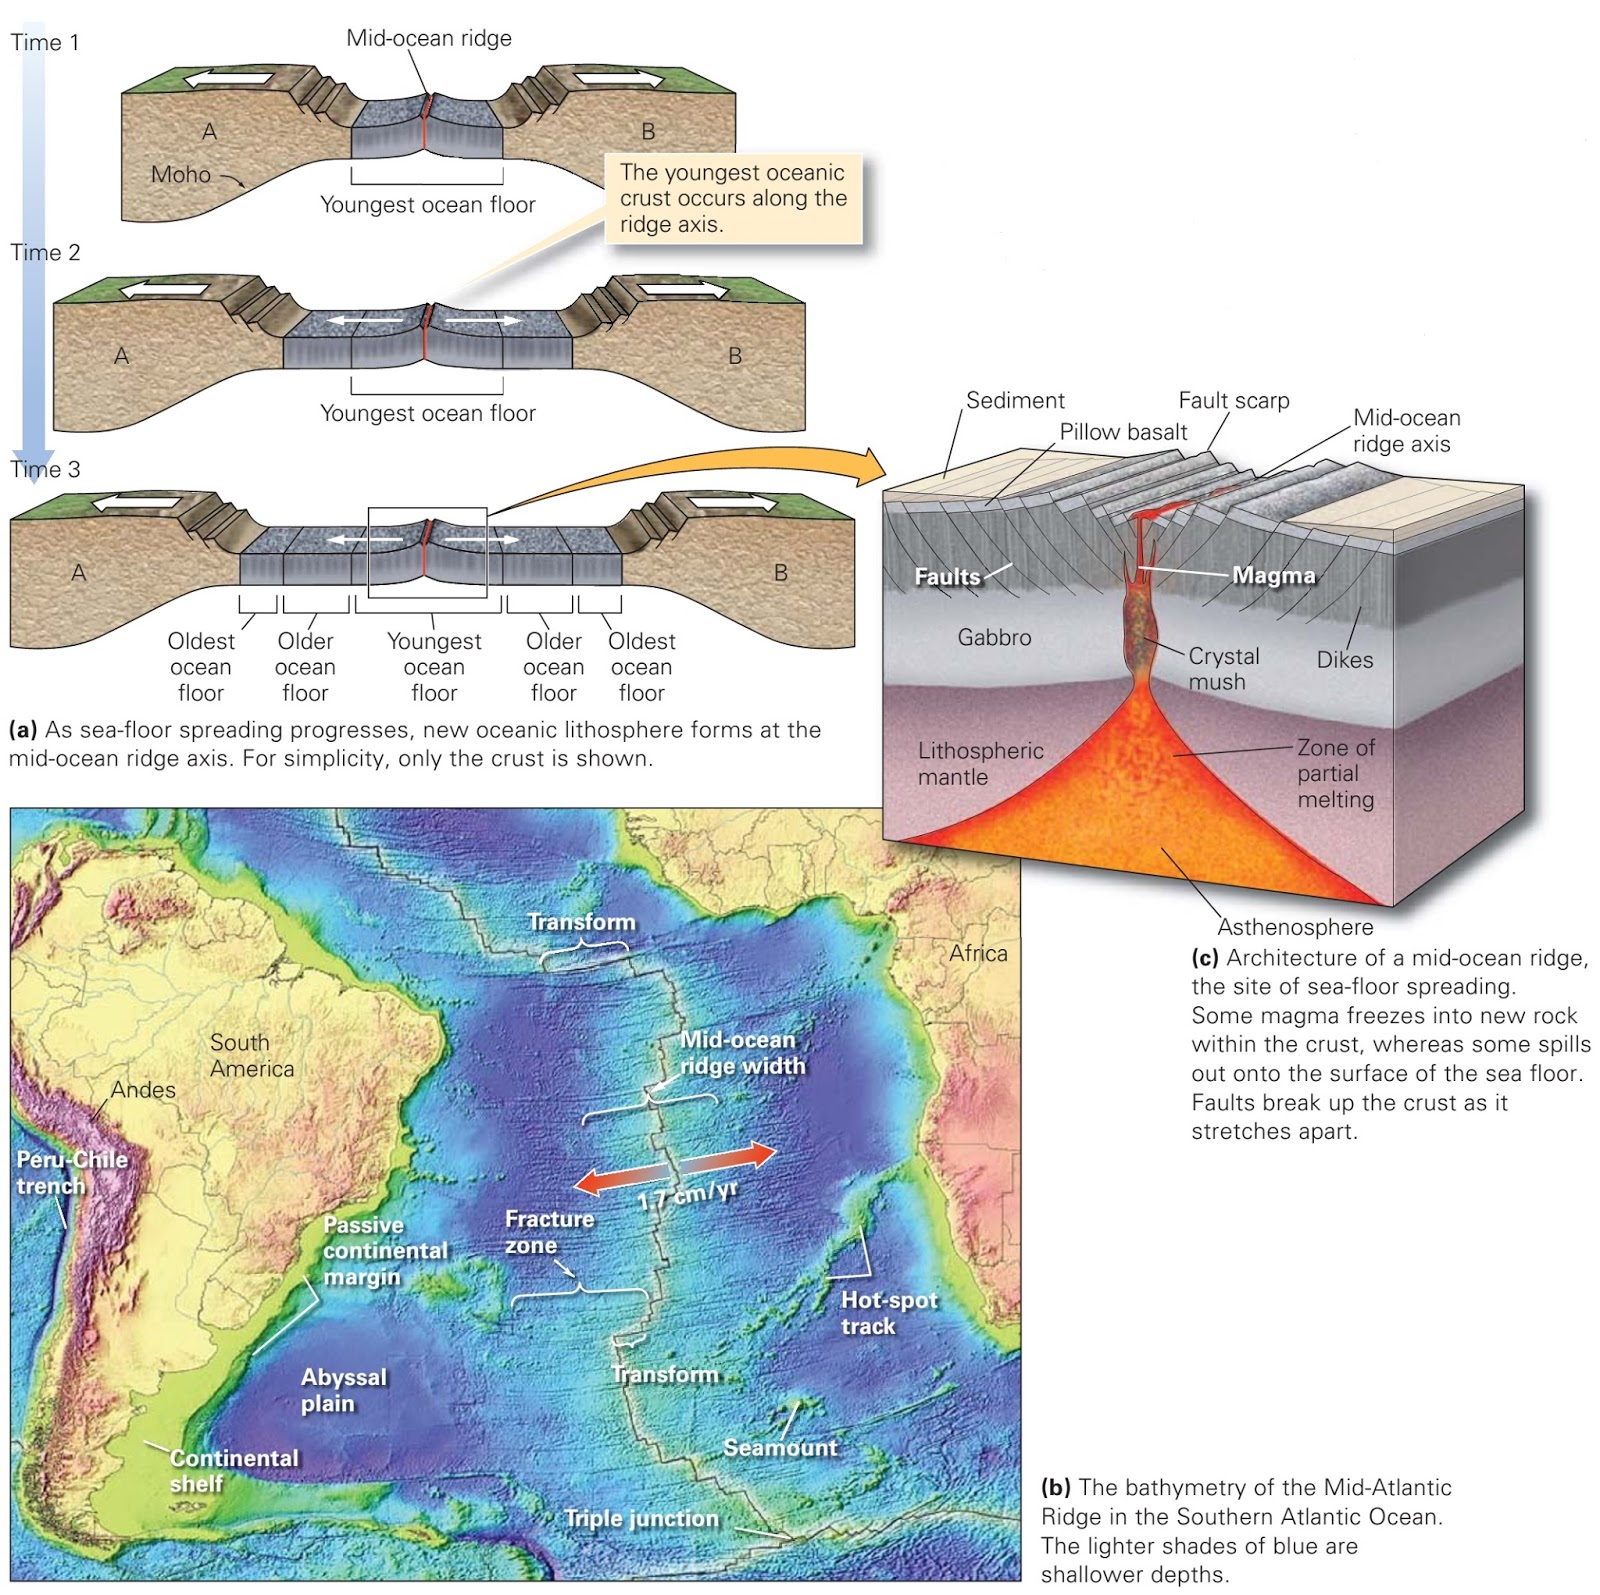 Divergent Plate Boundaries And Sea Floor Spreading